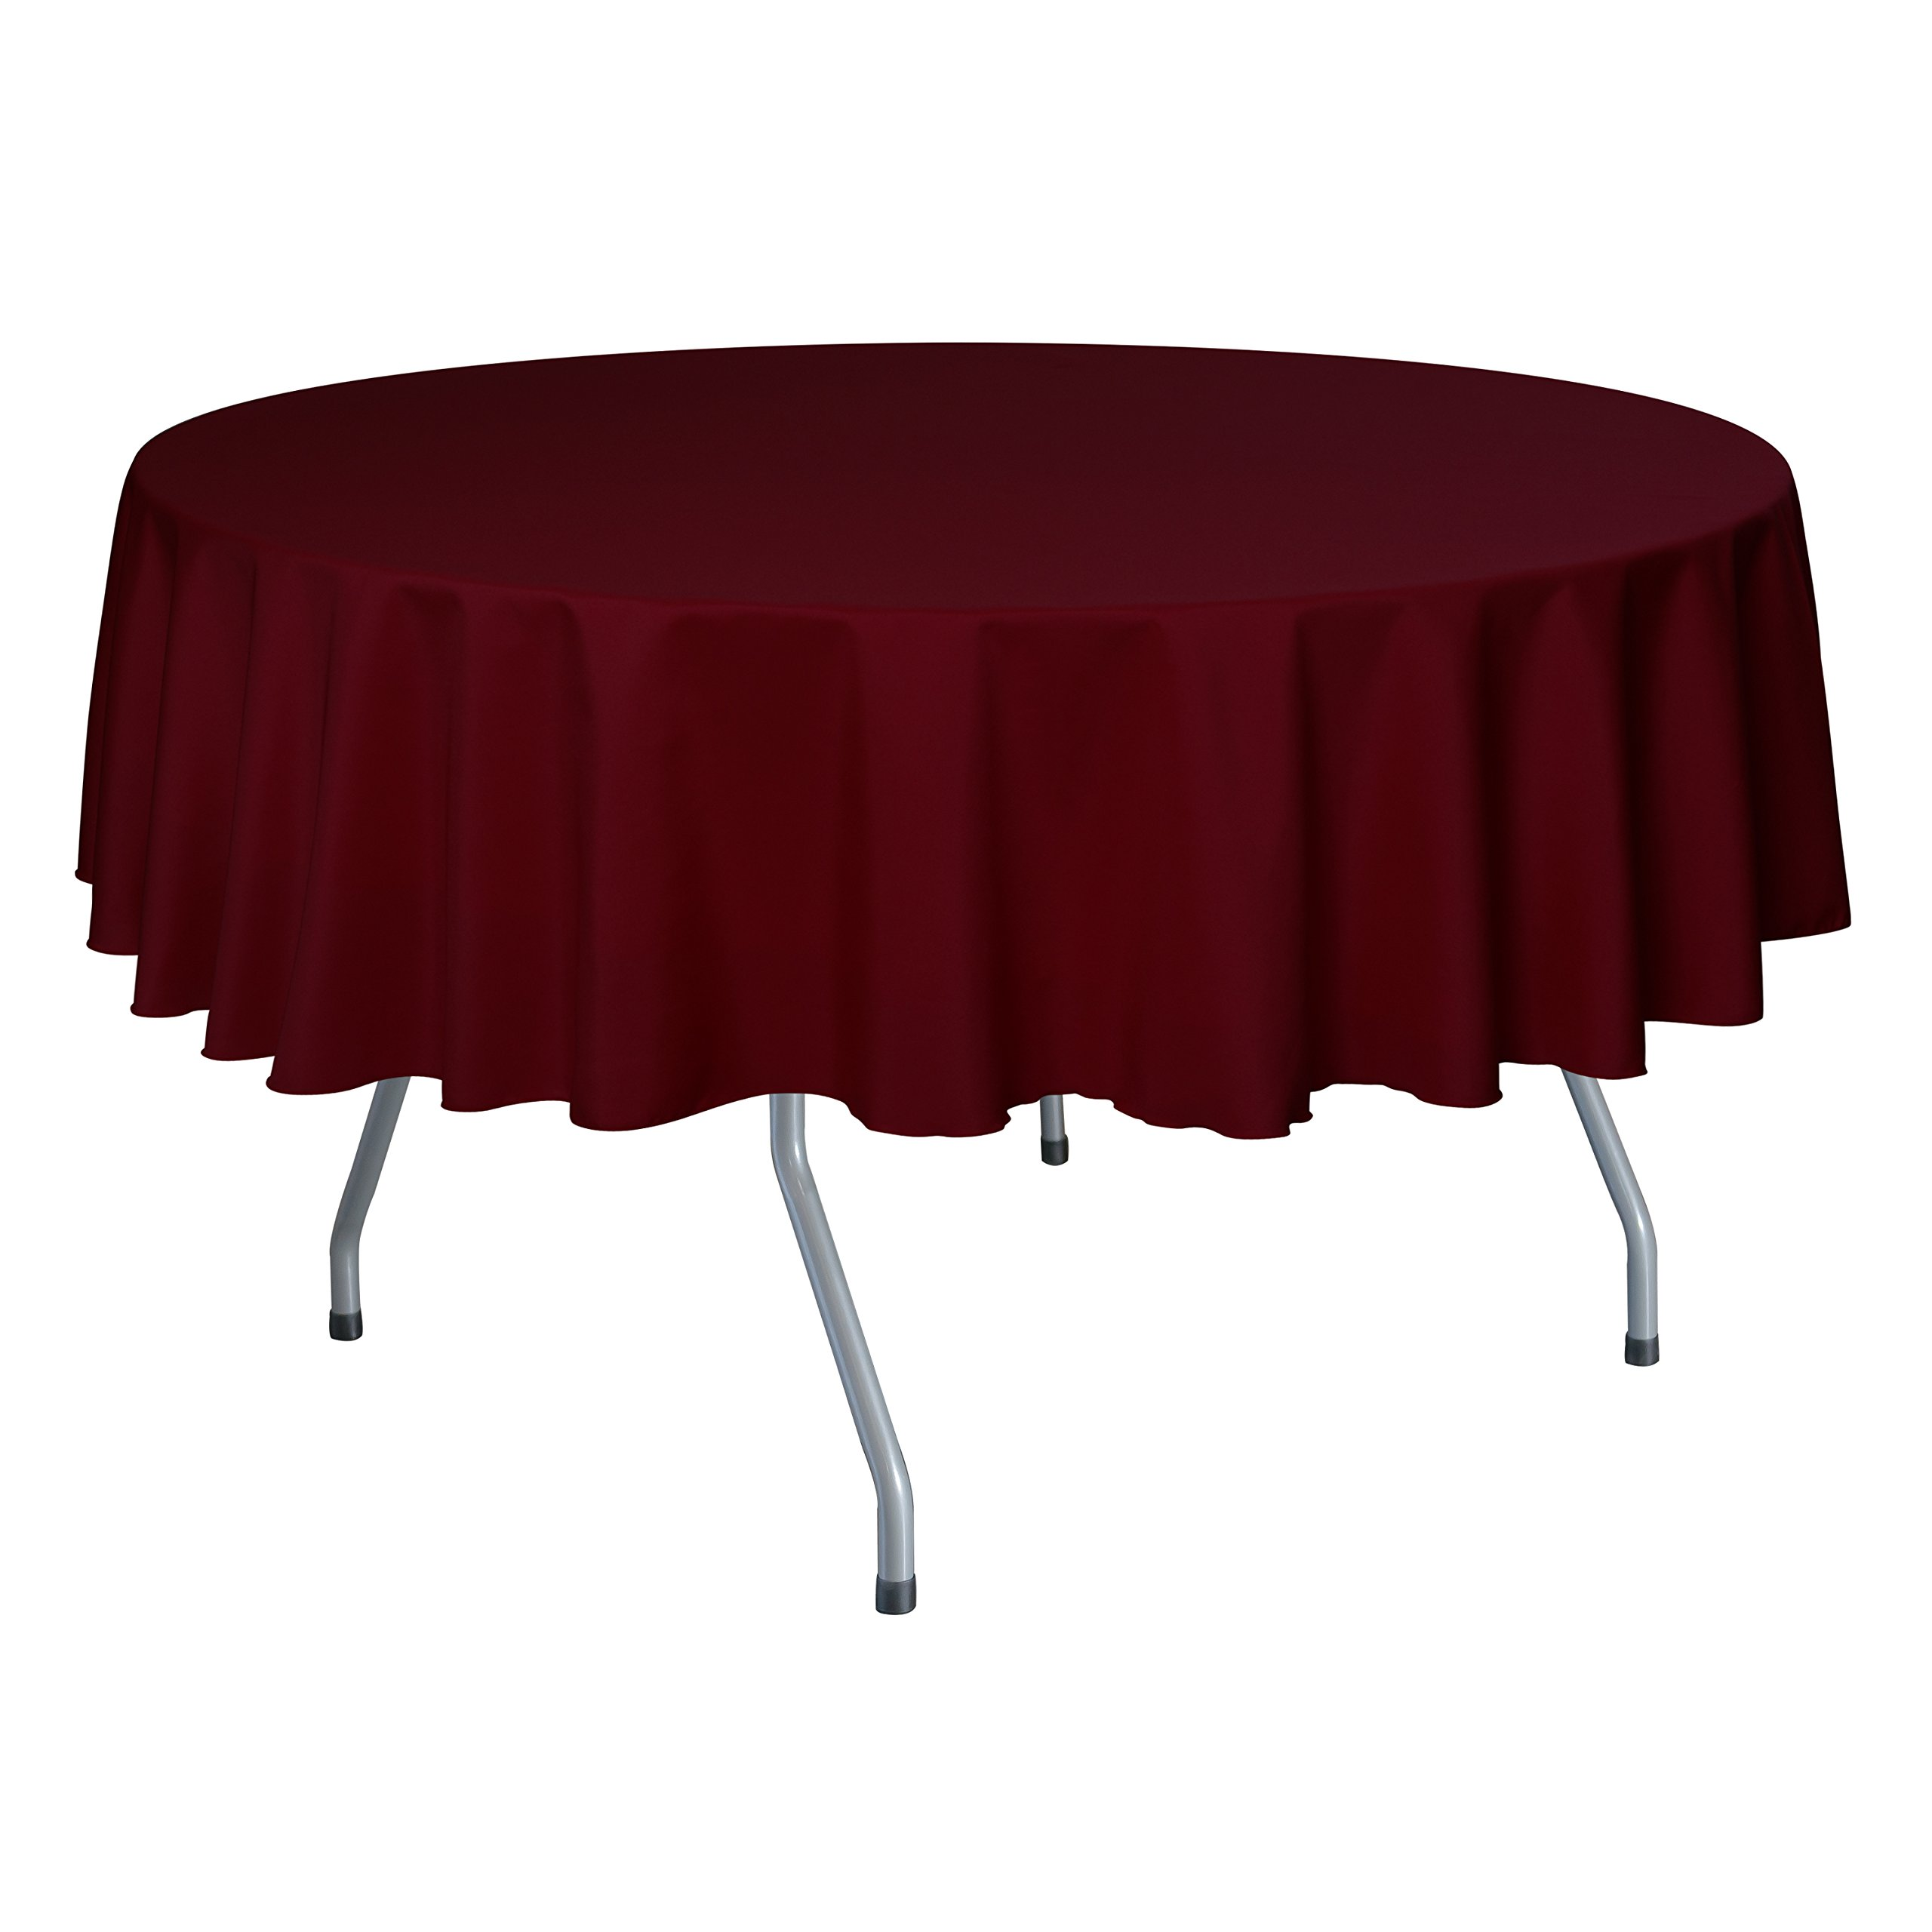 Ultimate Textile (10 Pack) 70-Inch Round Polyester Linen Tablecloth - for Wedding, Restaurant or Banquet use, Cherry Red by Ultimate Textile